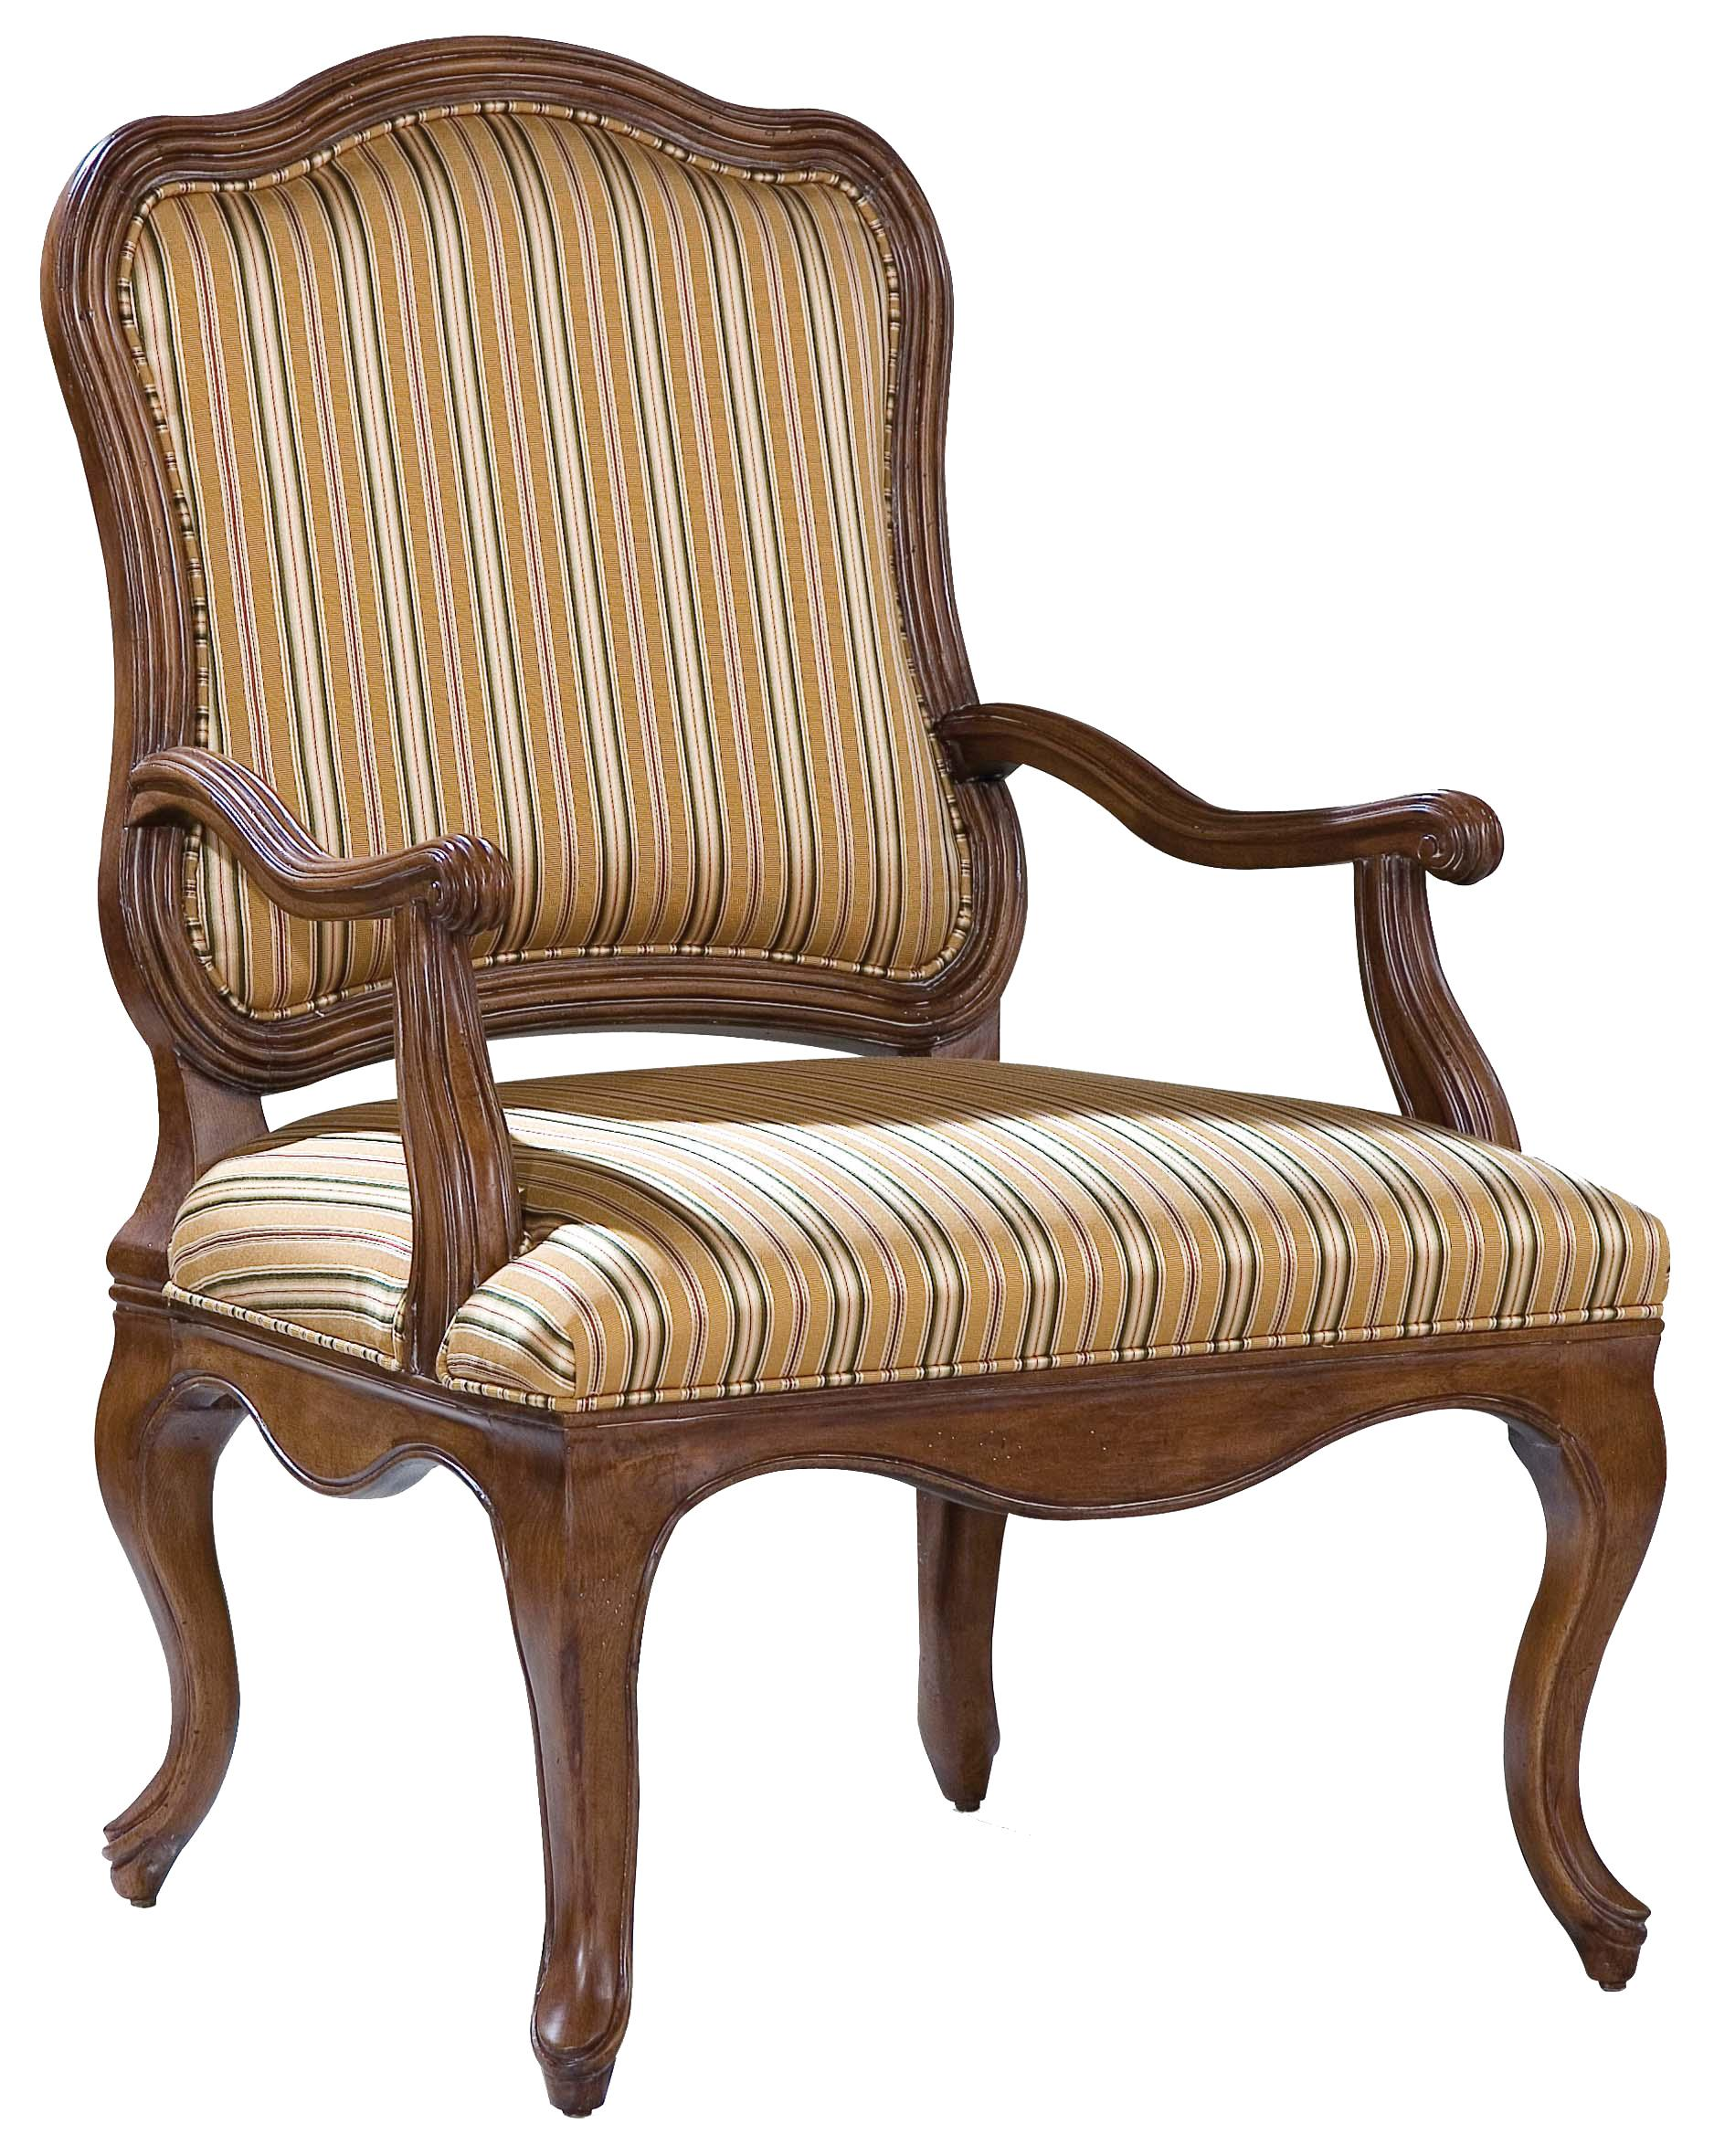 Fairfield Chairs Accent Chair with Curving Frame - Item Number: 5465-01